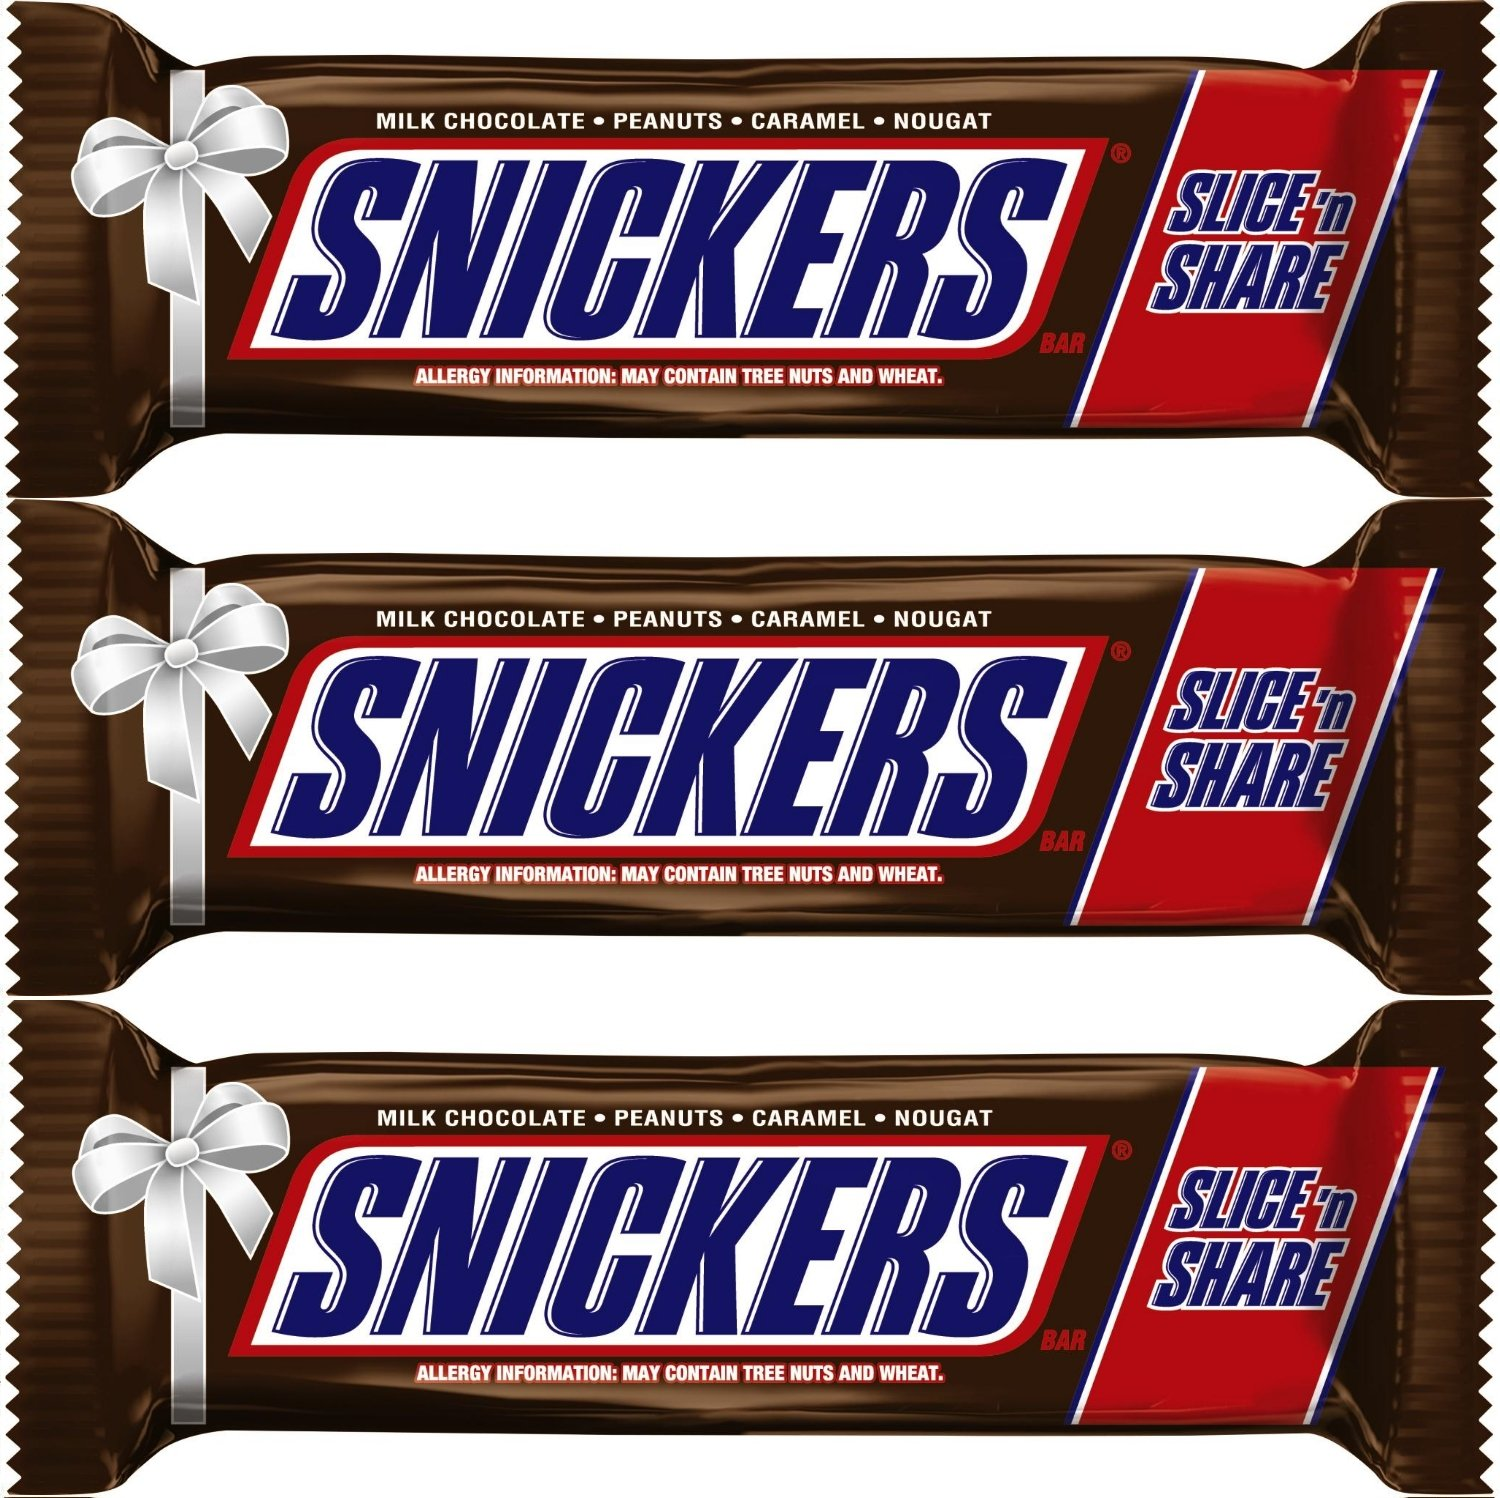 Snickers Chocolate Candy Bar Slice 'n Share (16 oz) - Pack of 3 Peanuts & Caramel for those Hungry Moments by Snickers